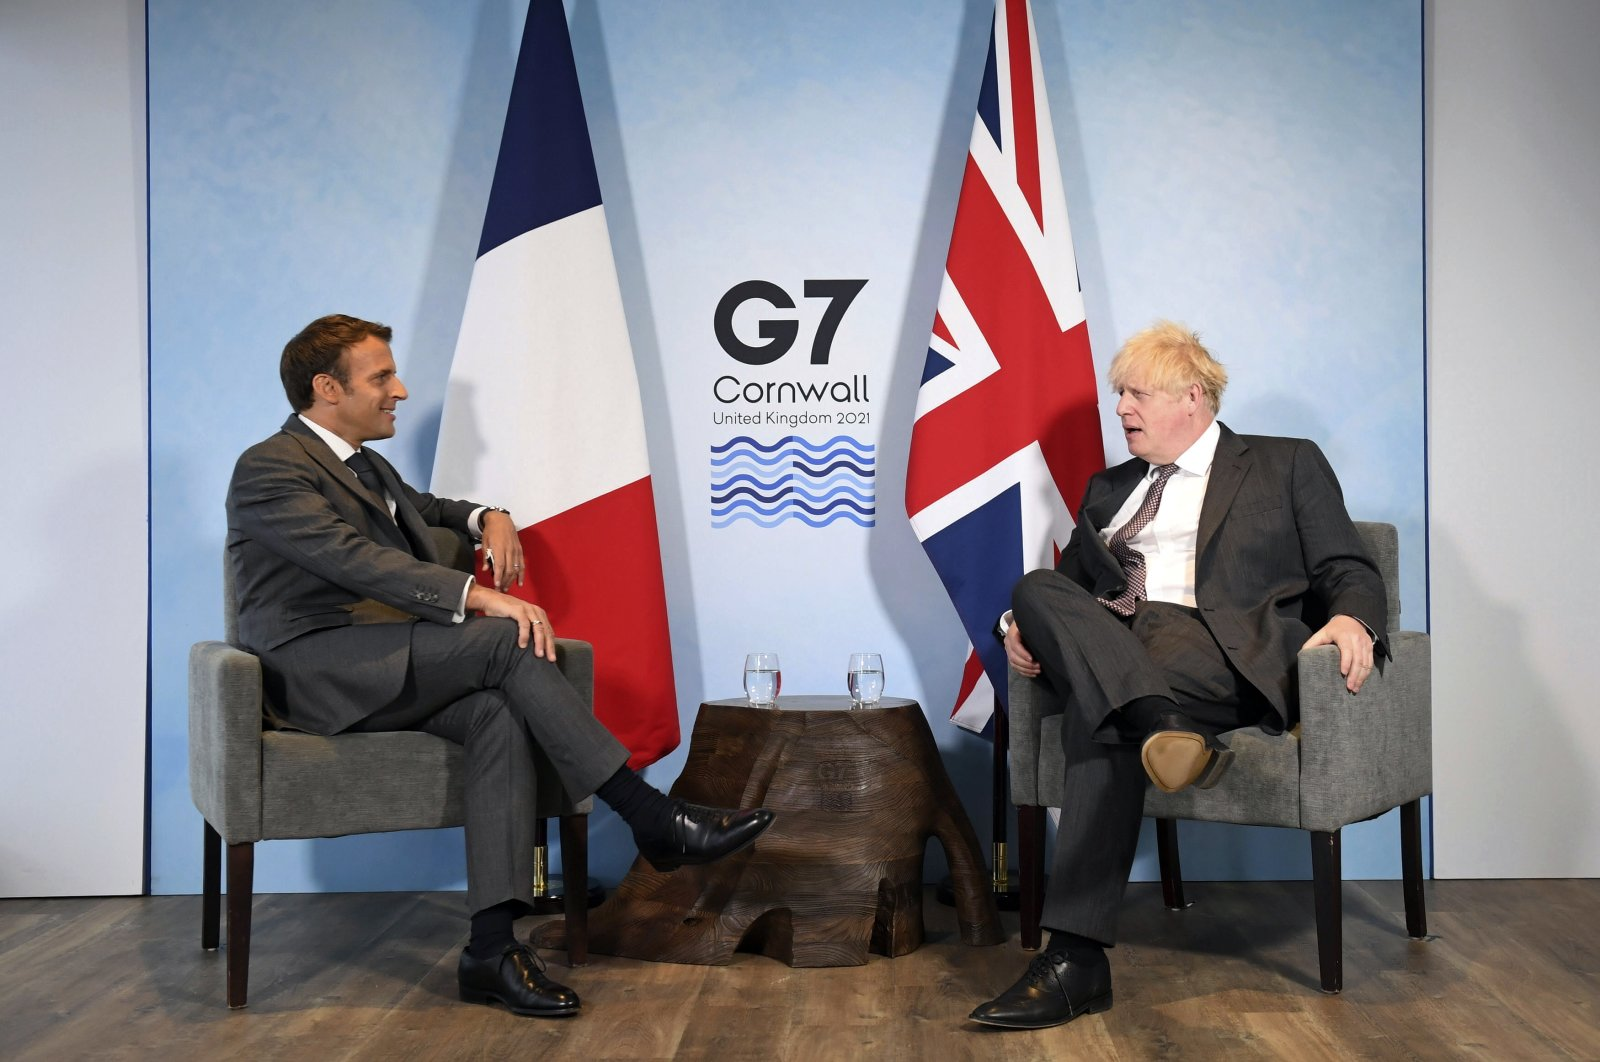 Britain's Prime Minister Boris Johnson (R) and French President Emmanuel Macron ahead of a bilateral meeting during the G-7 summit in Cornwall, England, June 12, 2021. (Pool via AP)